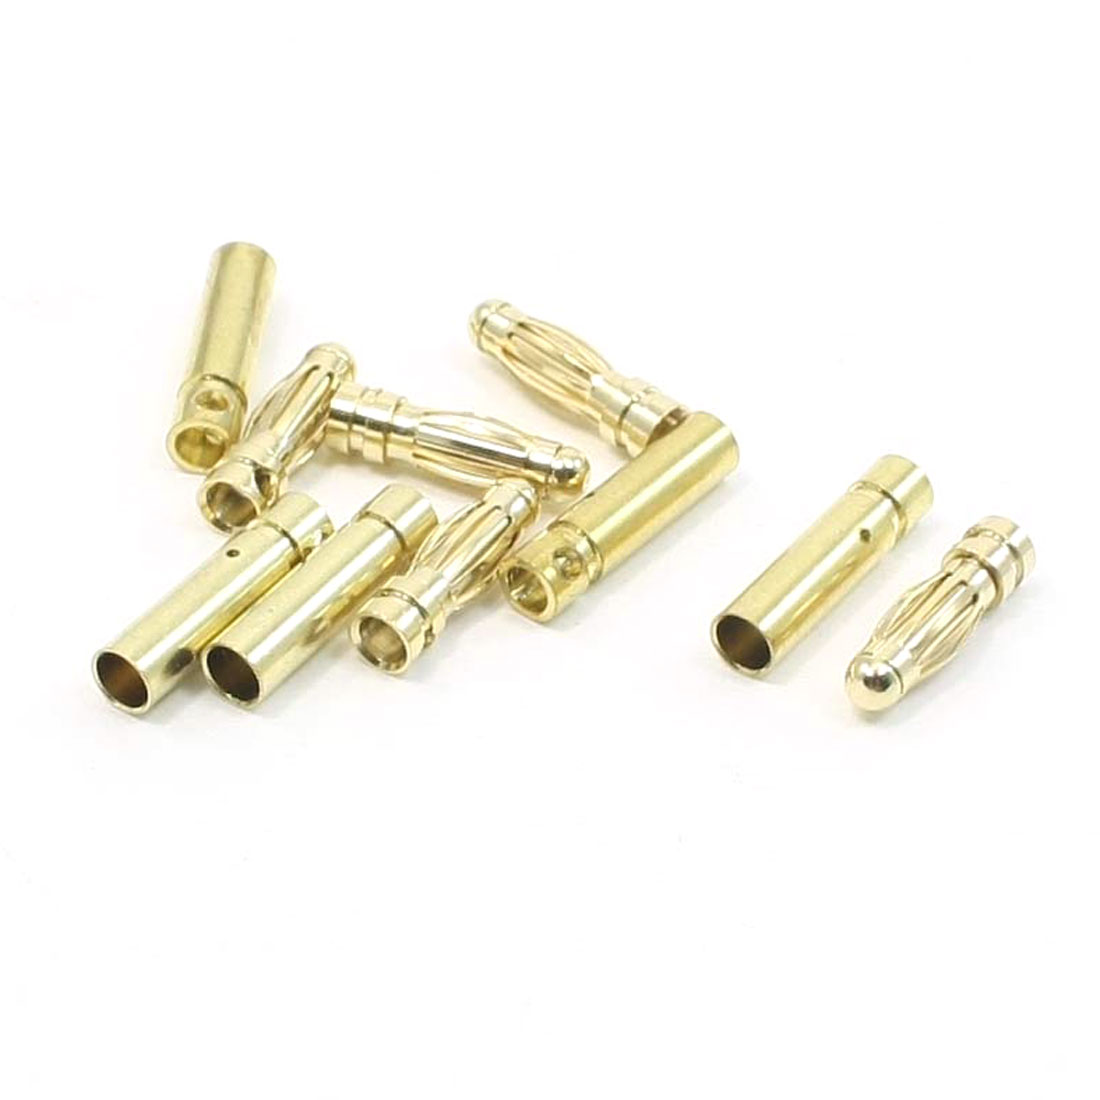 5 Pairs Gold Tone Audio Video Devices Female Male Banana Connectors 3mm Dia